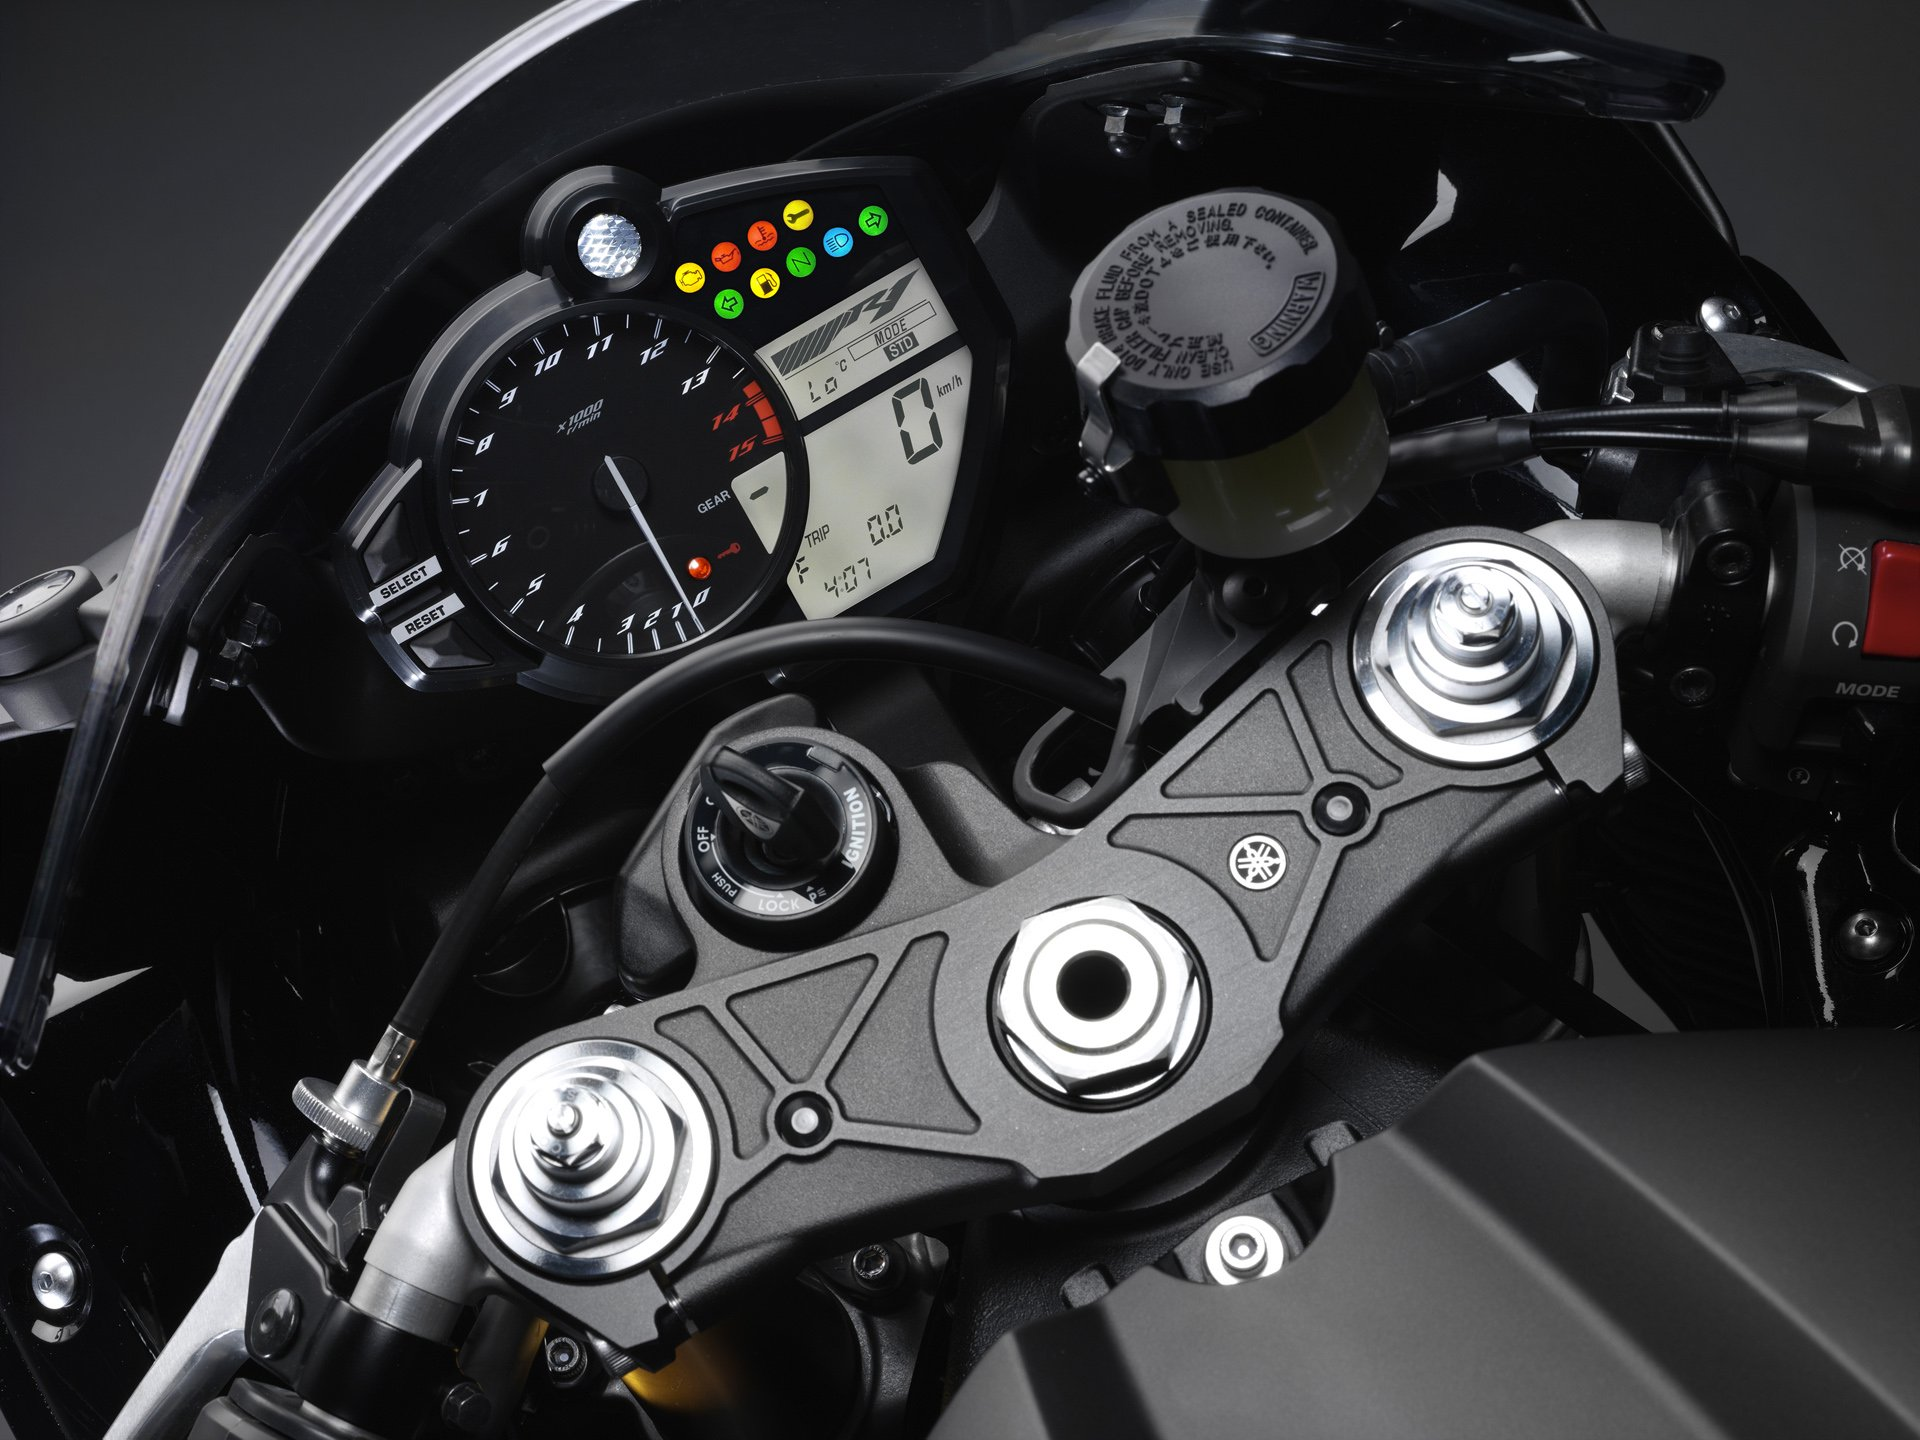 HD Yamaha Wallpaper Background Images For Download 1920x1440